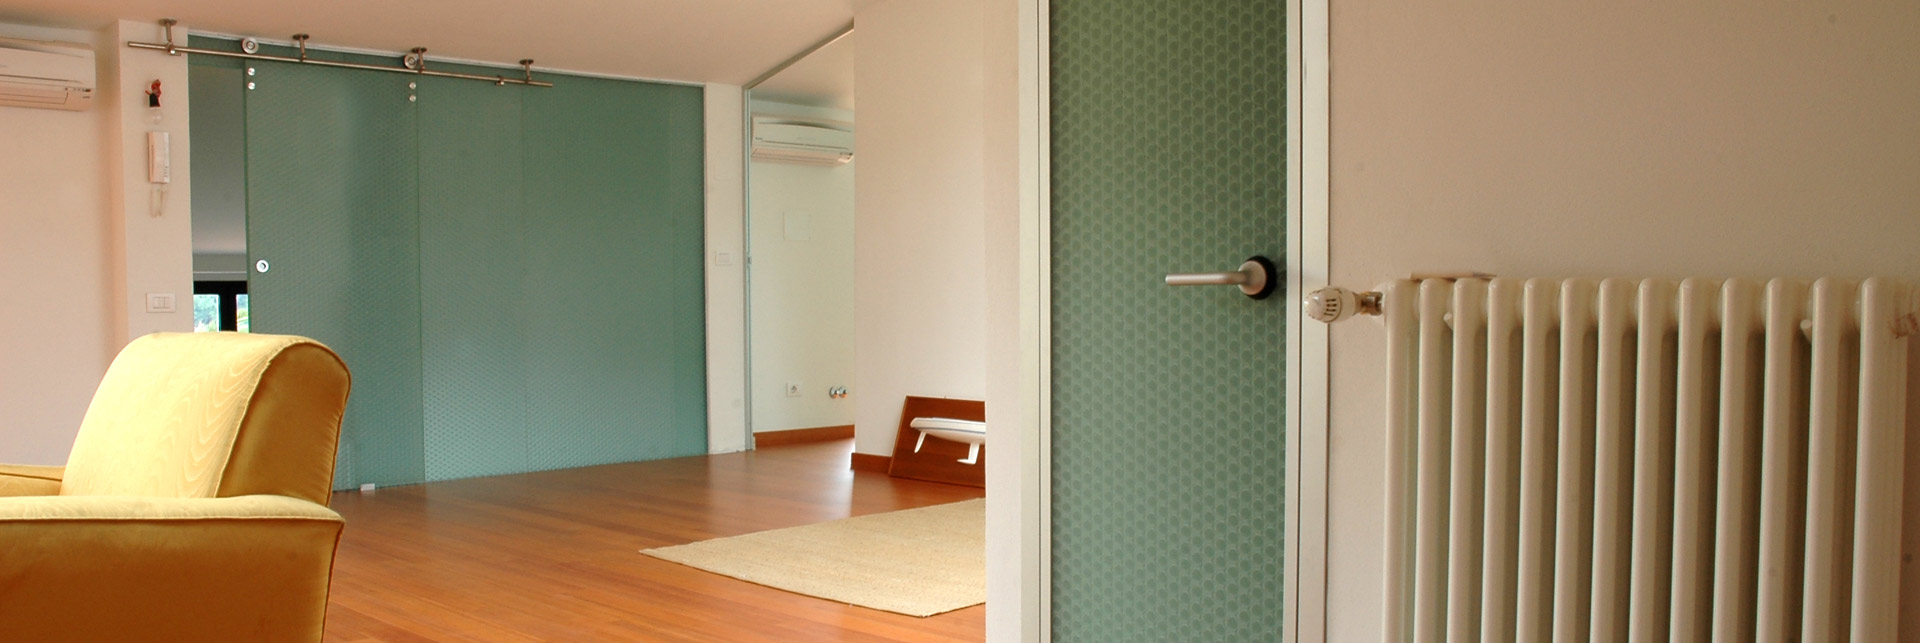 Private home, Sliding door and Partition